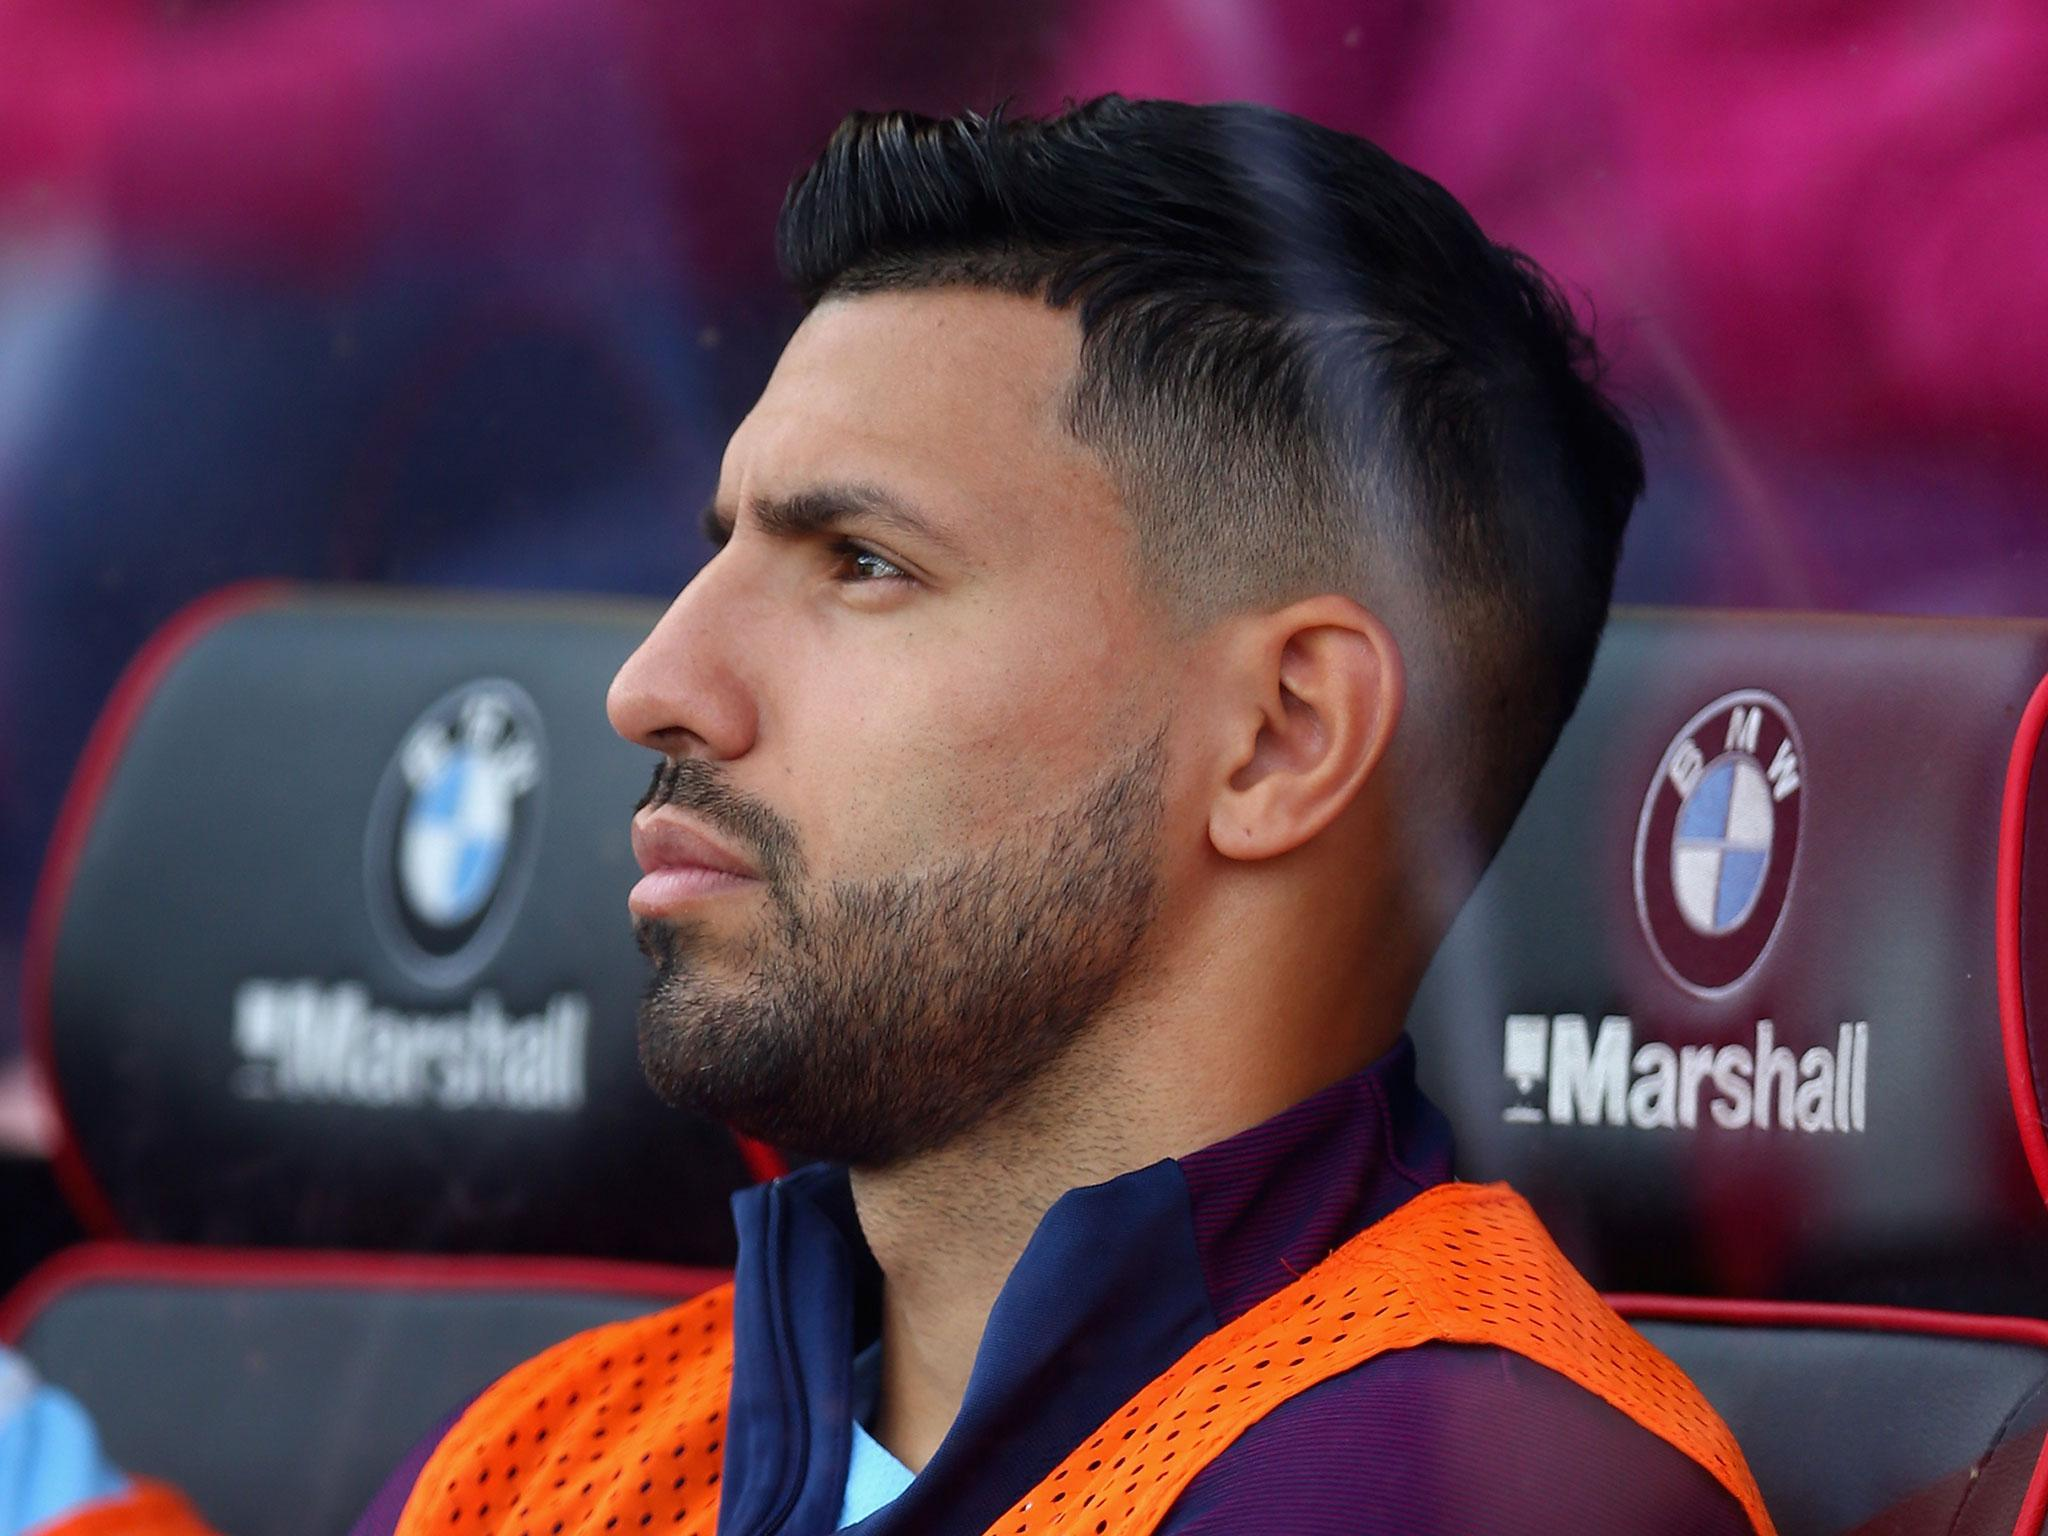 Arsenal Tell Manchester City They Want Sergio Aguero In Any Deal - Aguero hairstyle new